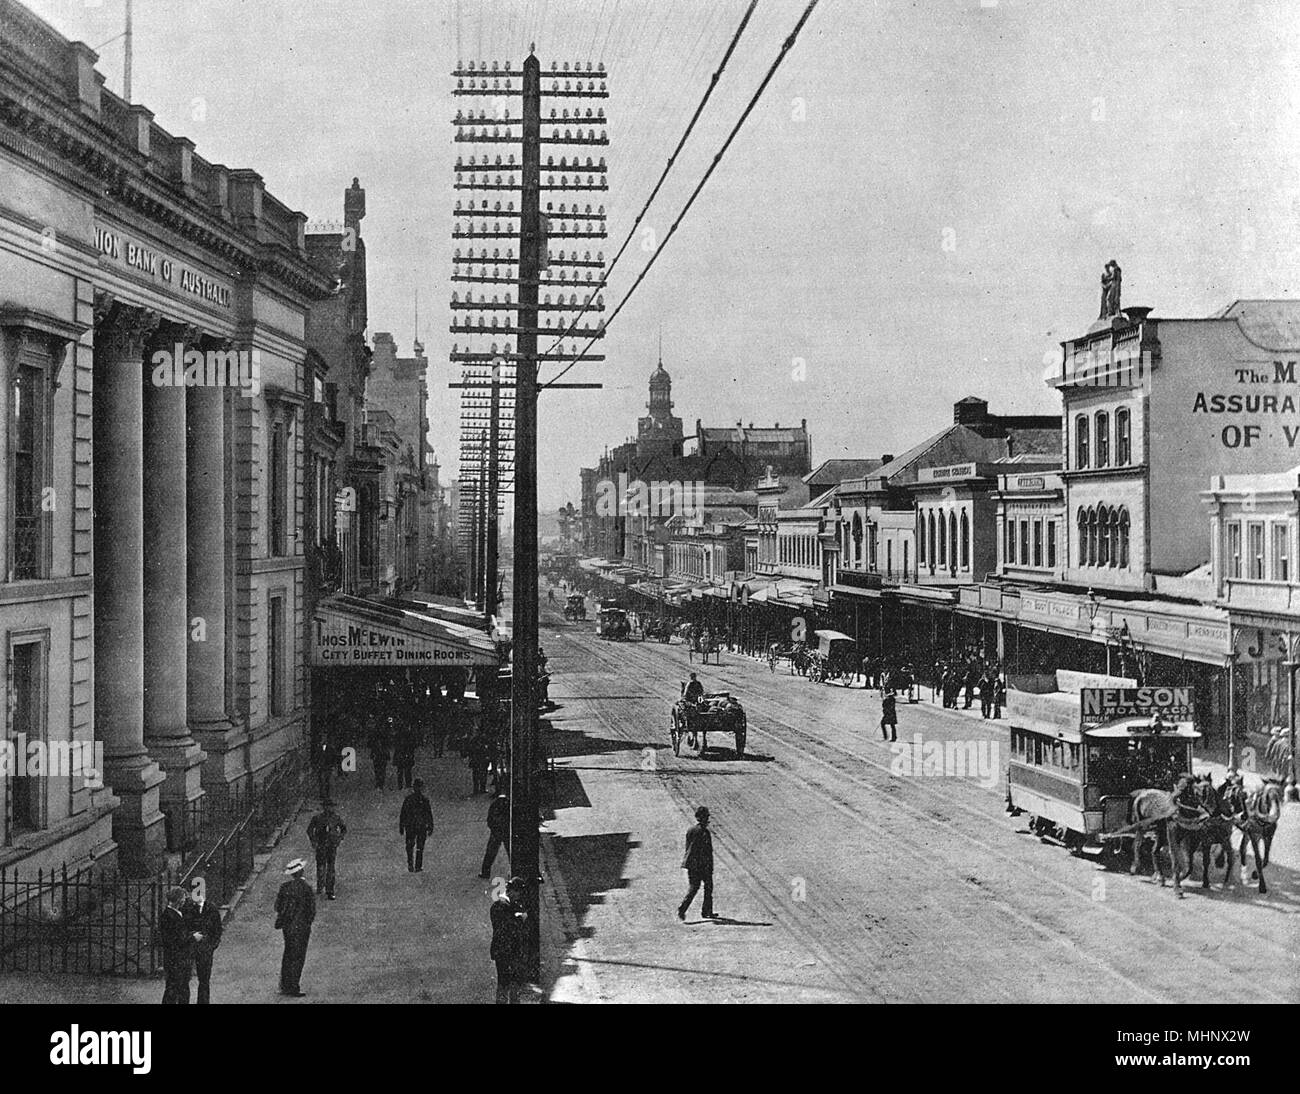 Queen Street, the main street of Auckland, North Island, New Zealand, with banks, office buildings, shops and clubs.      Date: circa 1900 - Stock Image